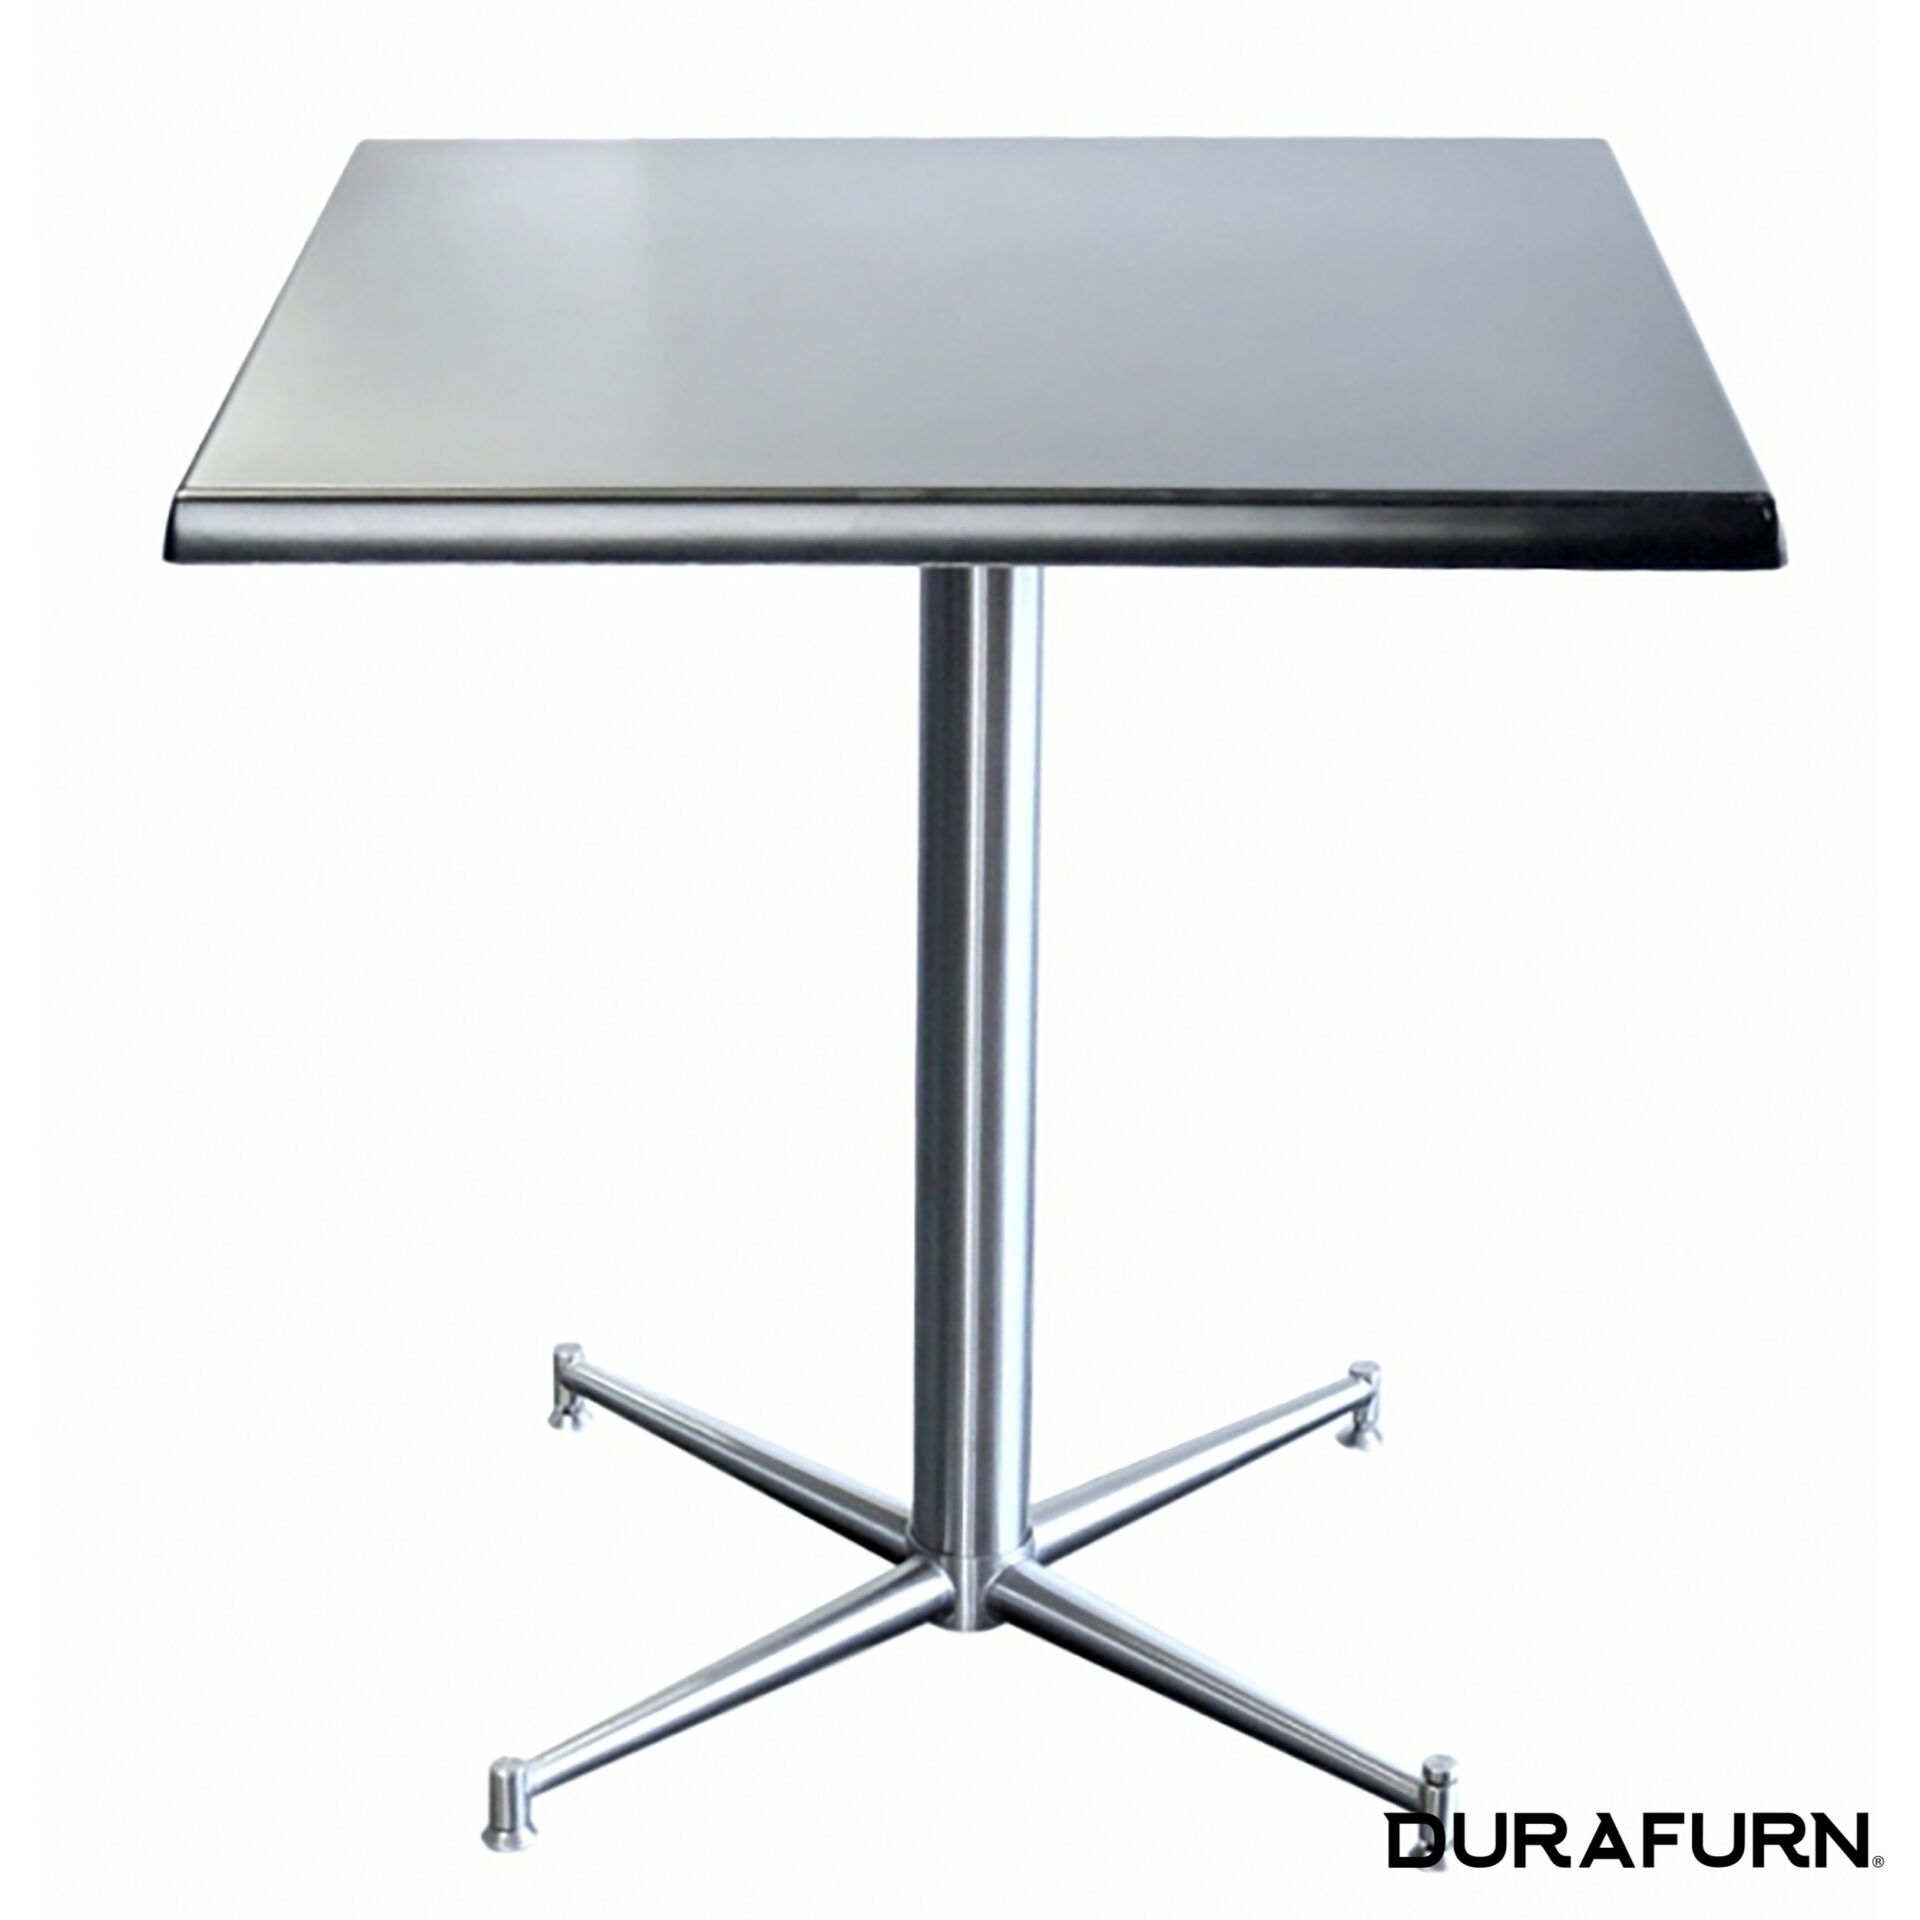 Stirling Table Base Square Table A loa1